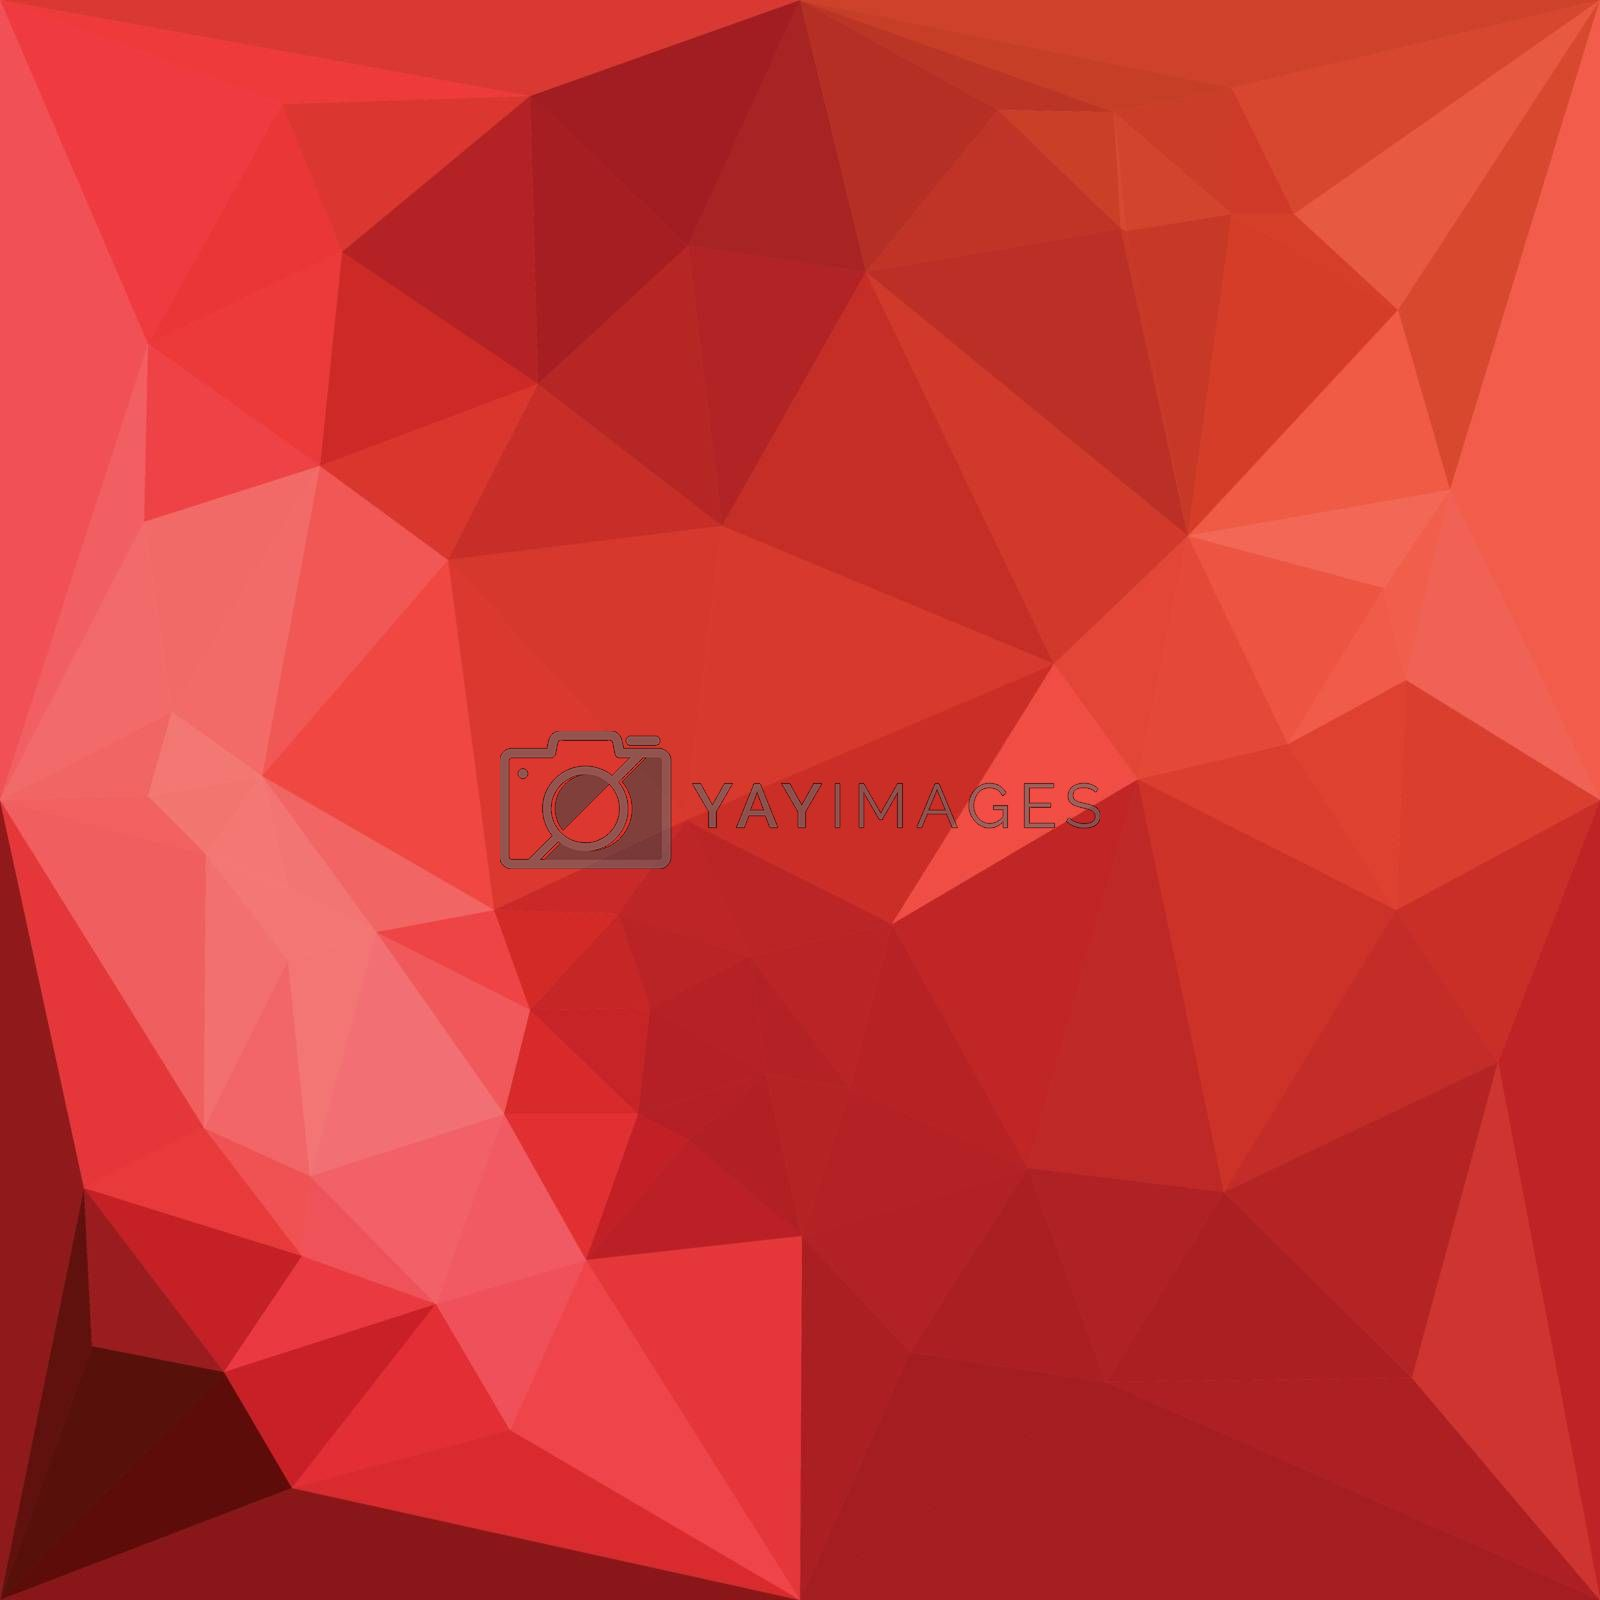 Low polygon style illustration of a tomato red abstract geometric background.